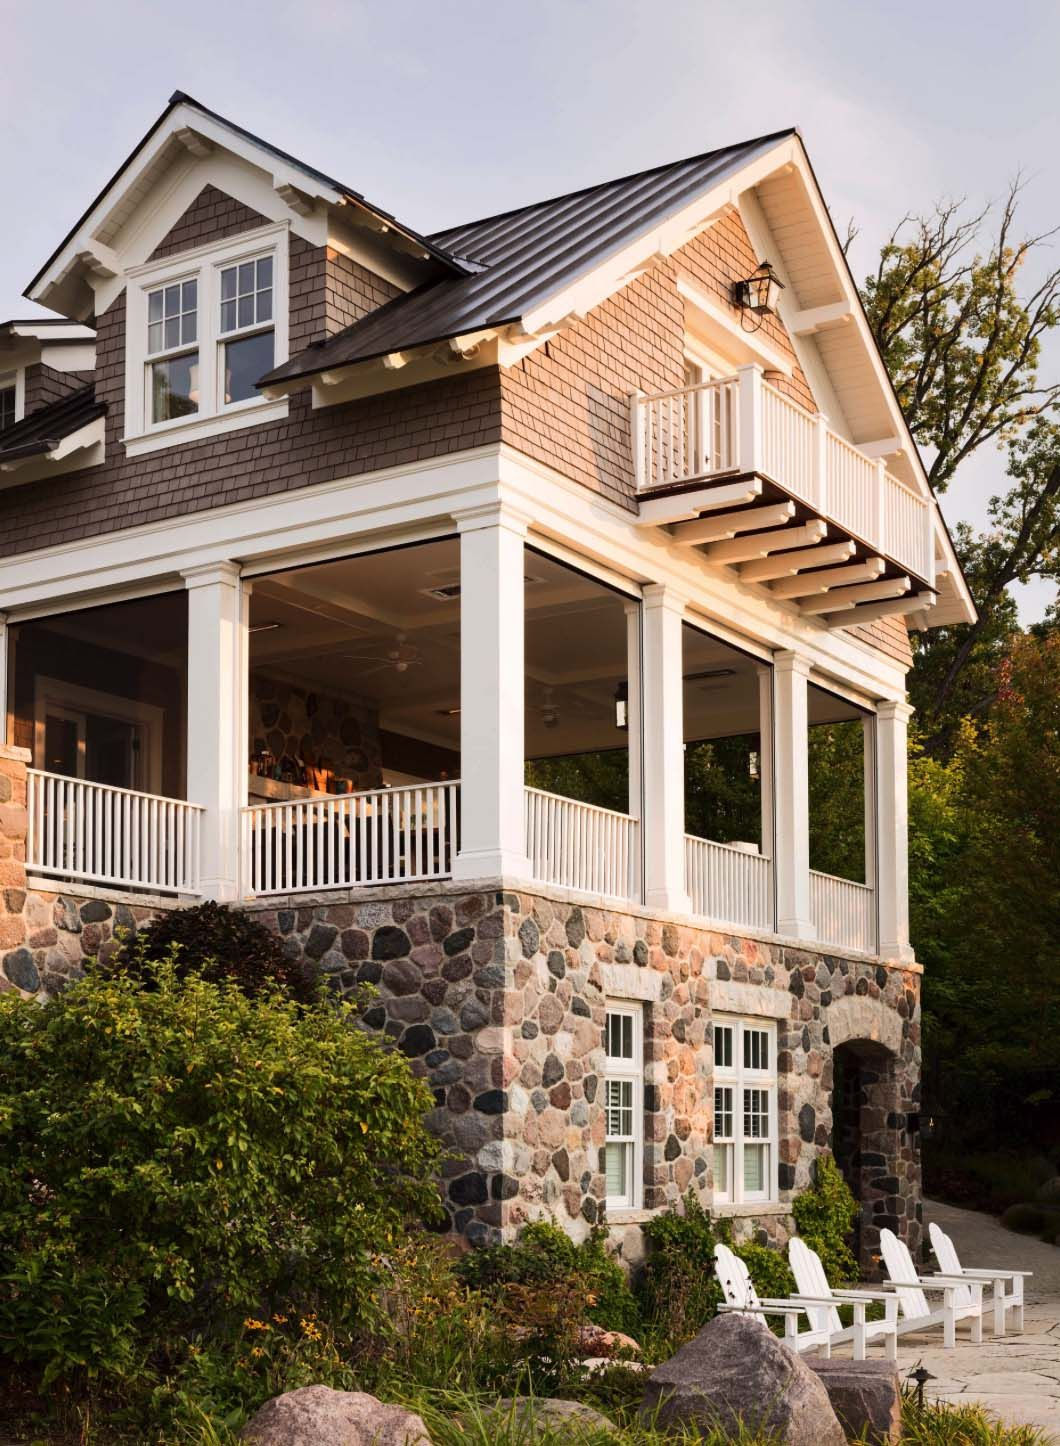 Beautiful Shingle Style Home In Wisconsin Designed To Maximize Lake Views Shingle Style Homes Beach House Plans Cottage Style House Plans